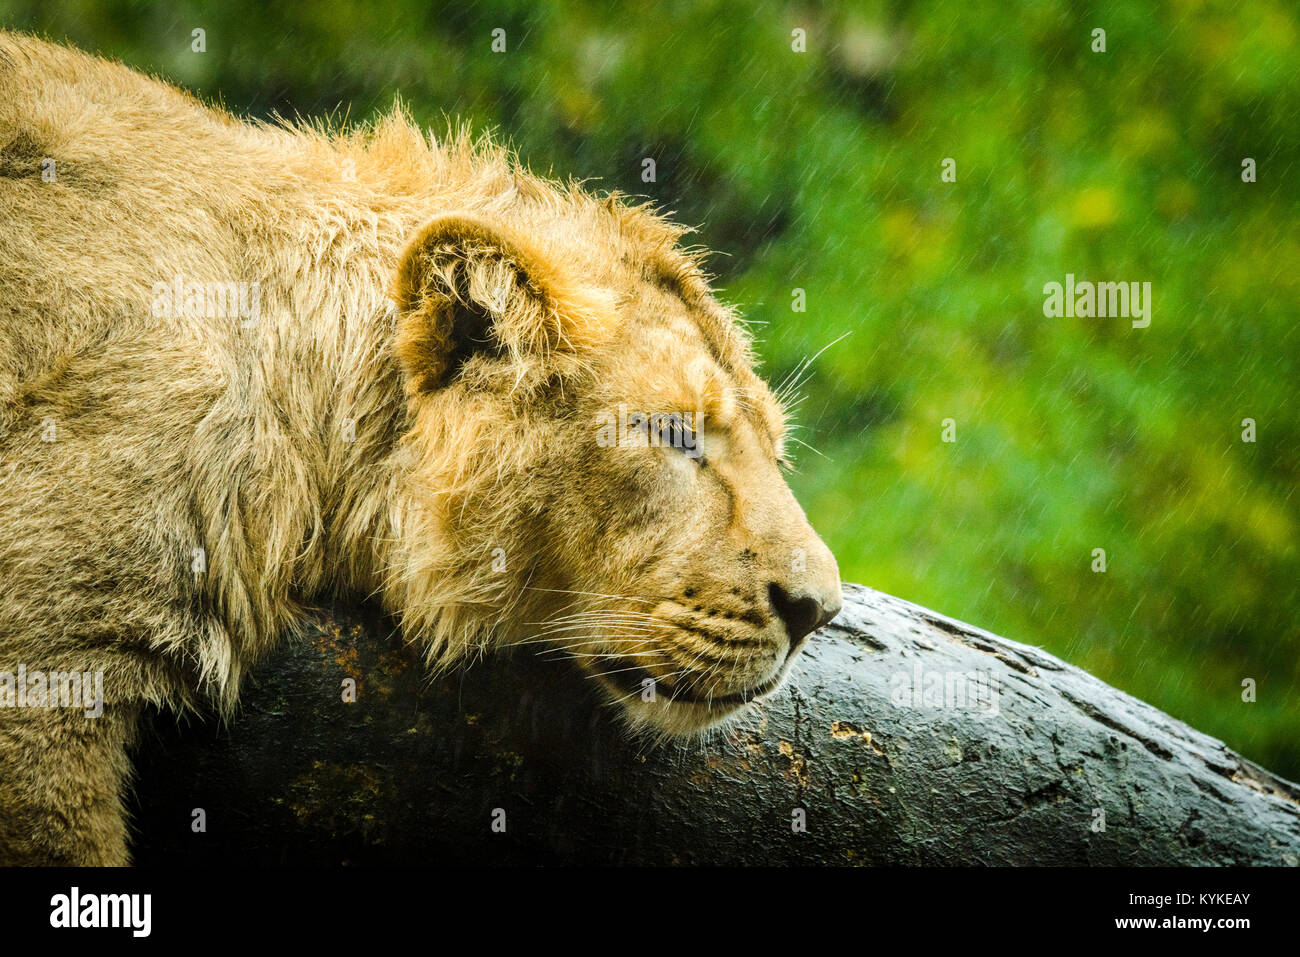 Female lion trying to sleep on a rainy day in the outdoors with raindrops falling on a green background - Stock Image